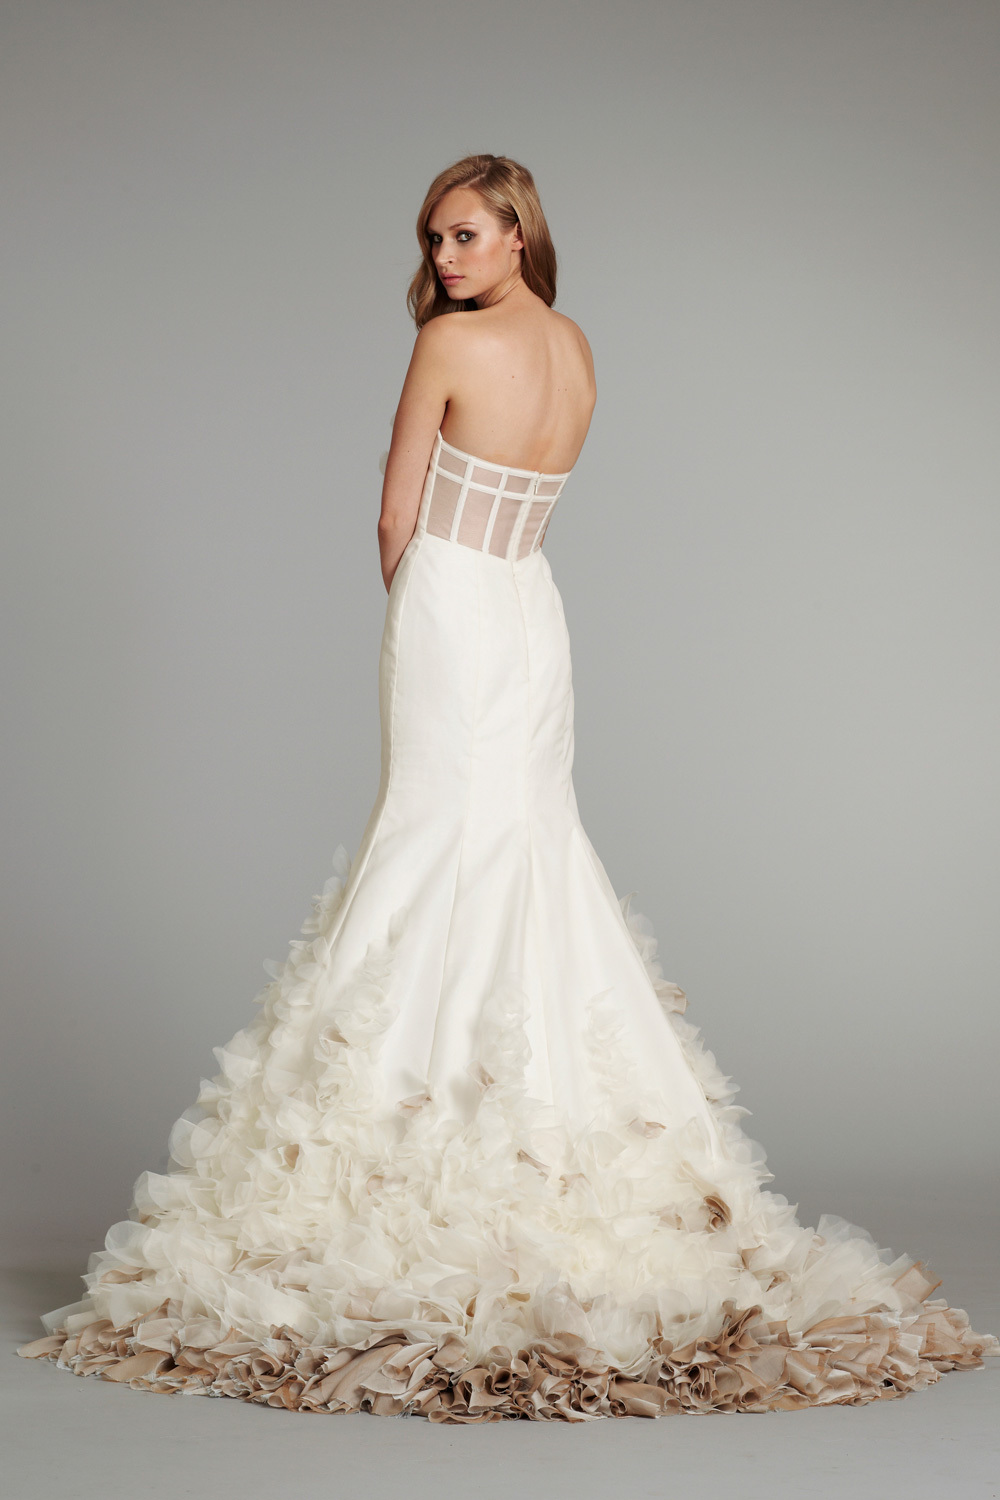 Bridal-gown-wedding-dress-jlm-hayley-paige-fall-2012-babs-back.full